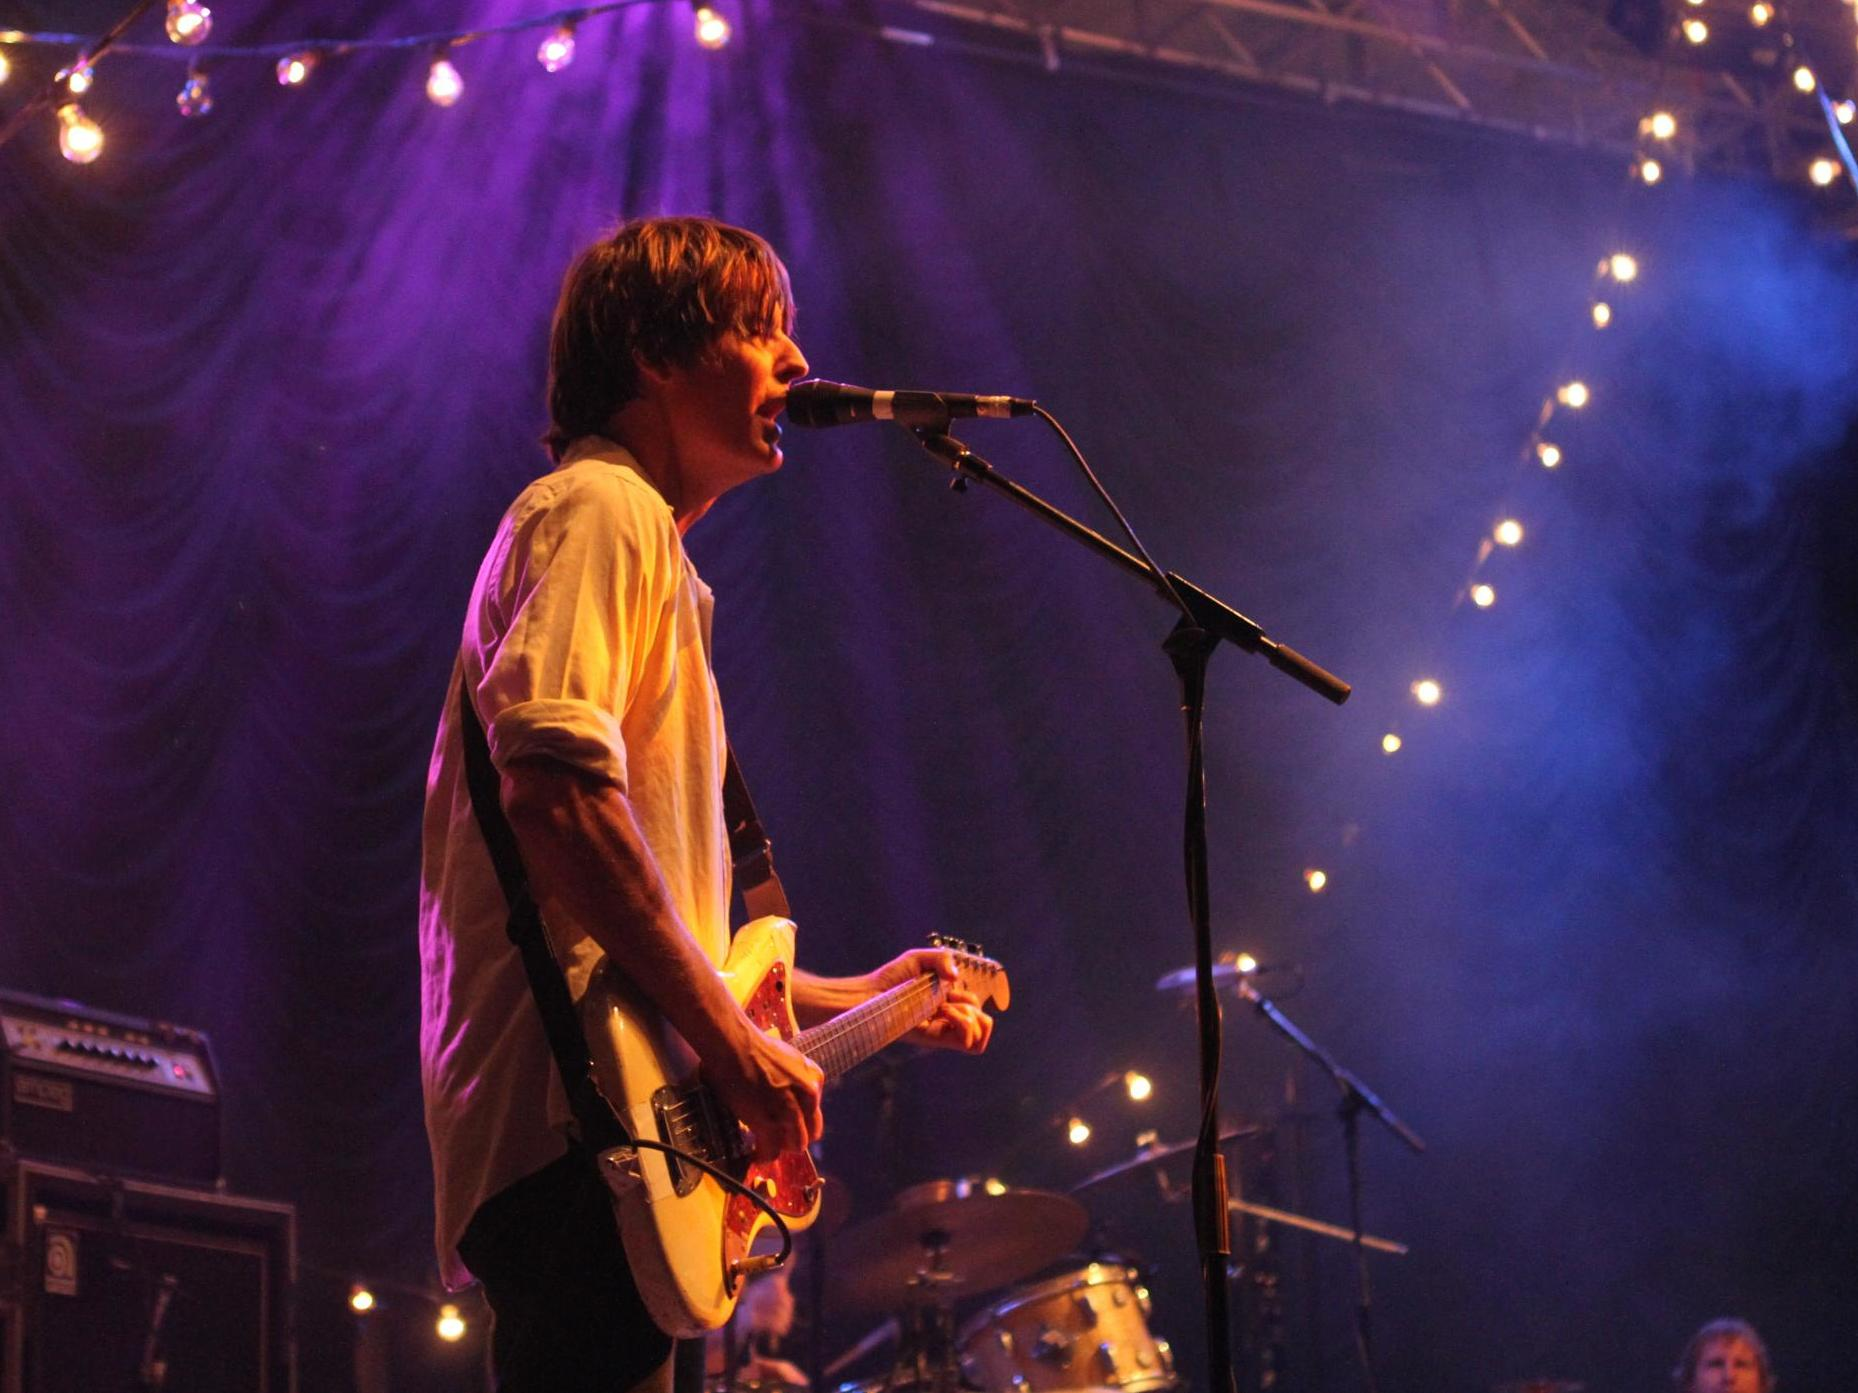 Best Indie Albums 2020 Pavement reunion: US band announce 2020 comeback shows at